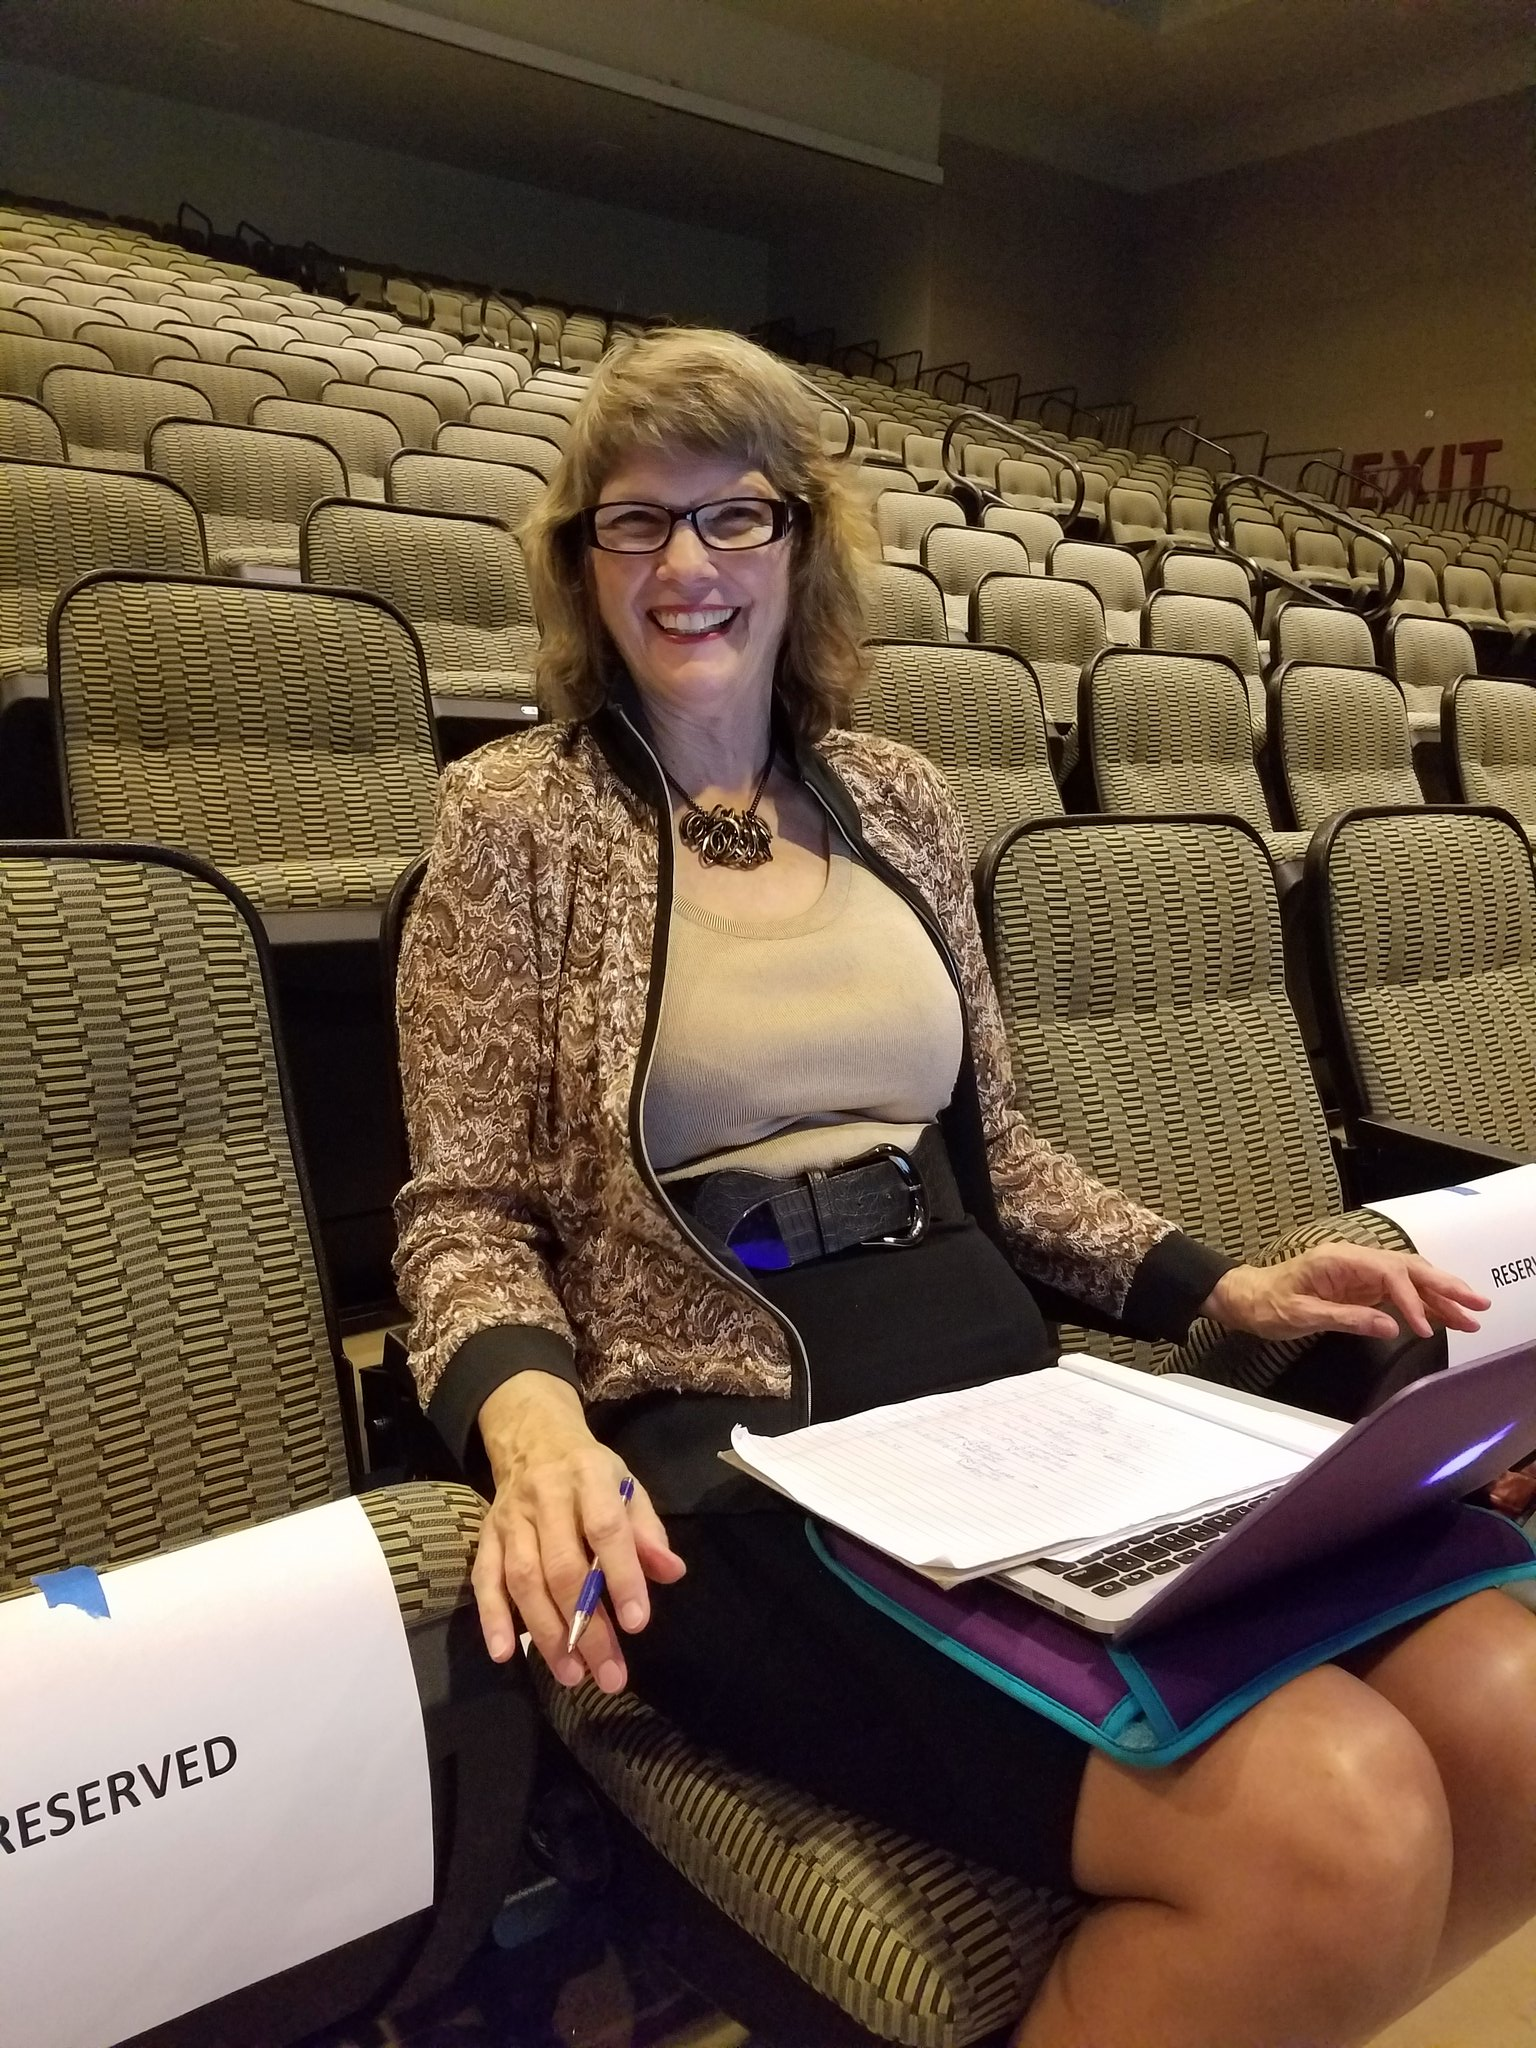 The opening session is about to start! We are live tweeting for @CathySeeley .#NCTMregionals #presignite https://t.co/DkL4sbqwuk